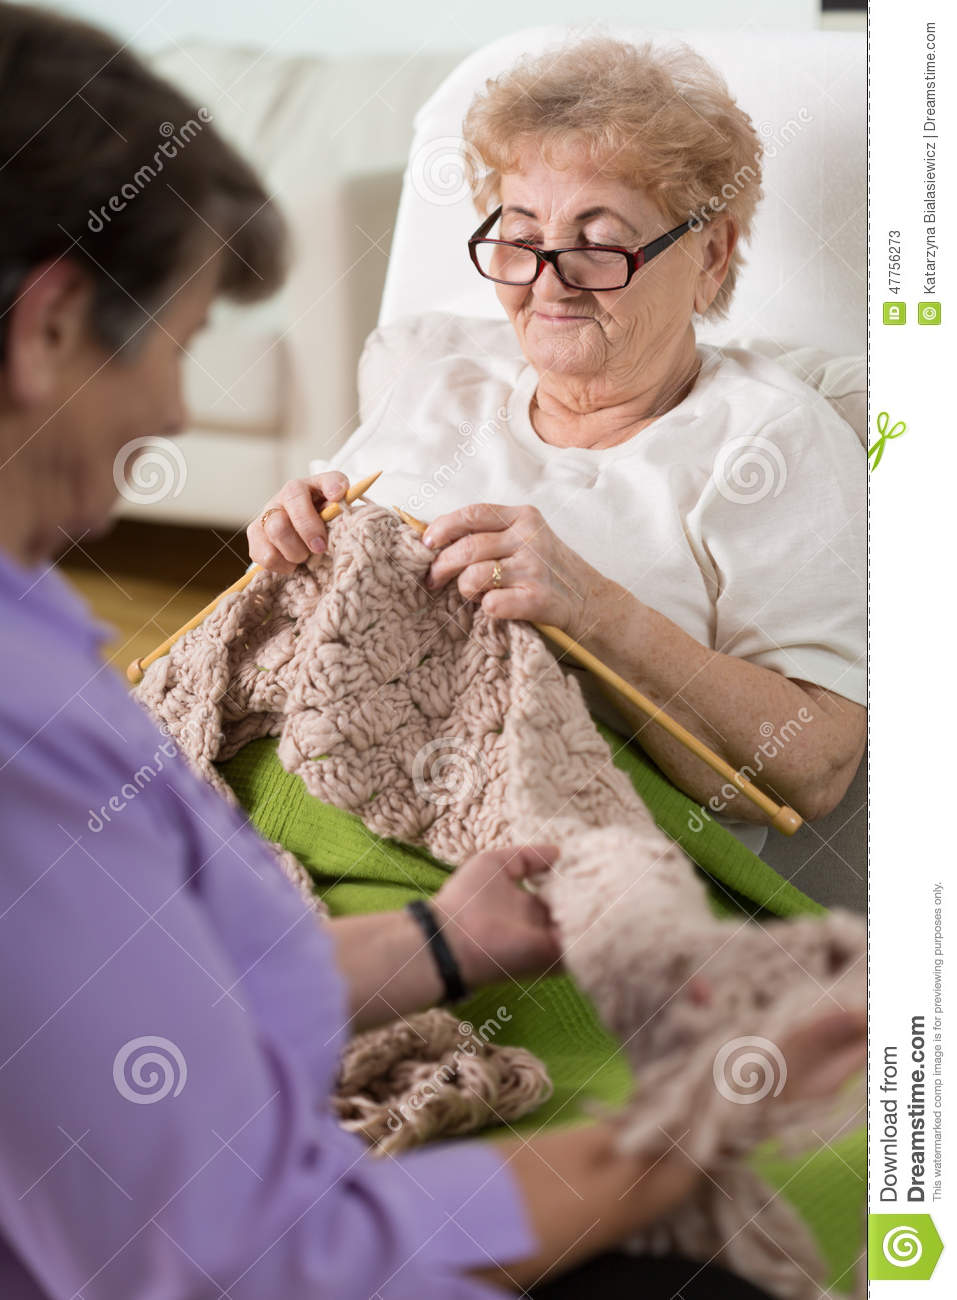 Knitting In Bed : Knitting in hospital bed stock photo image